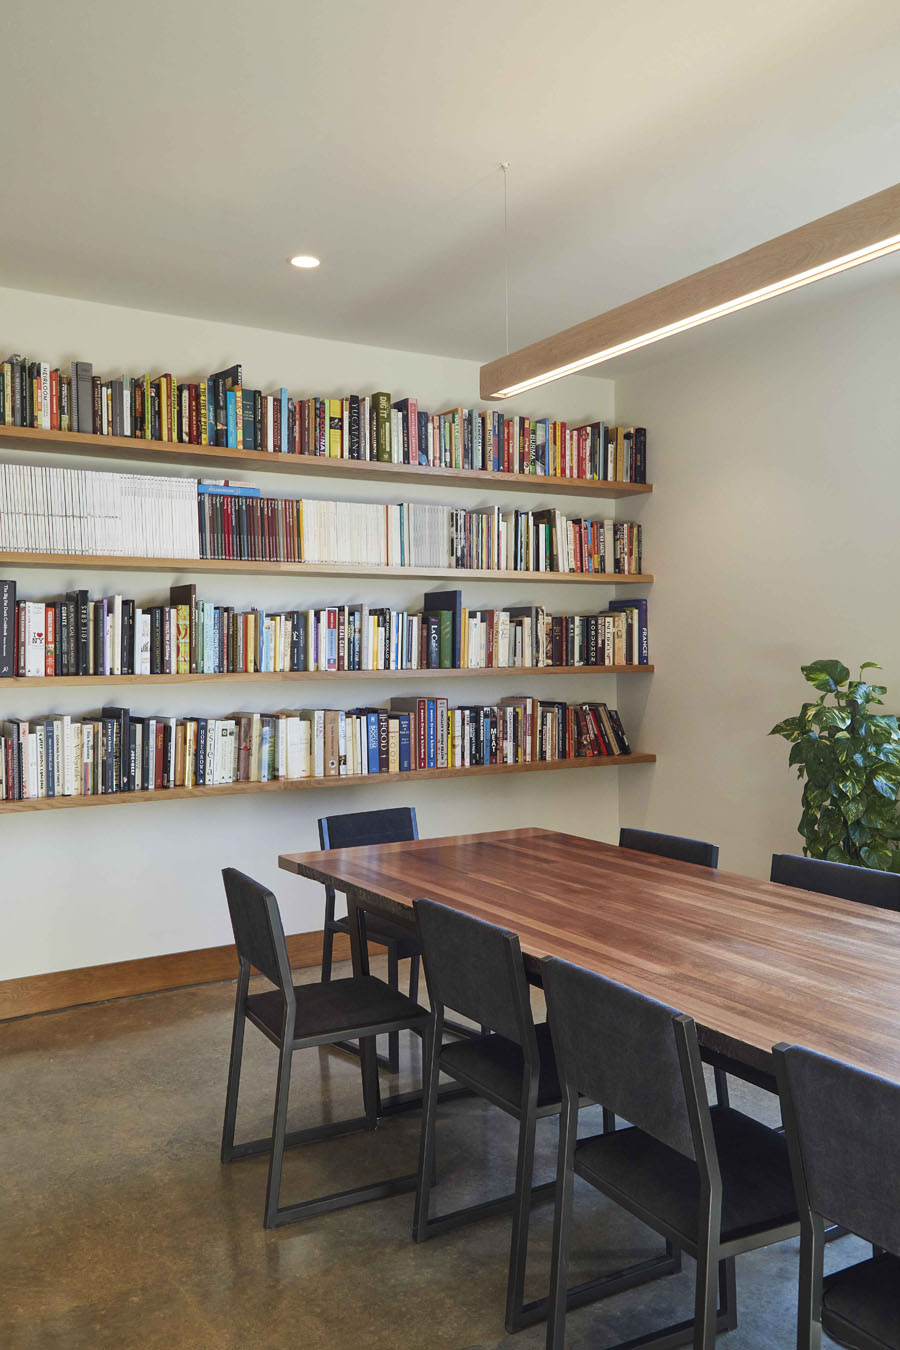 interior dining area with bookshelves lining walls